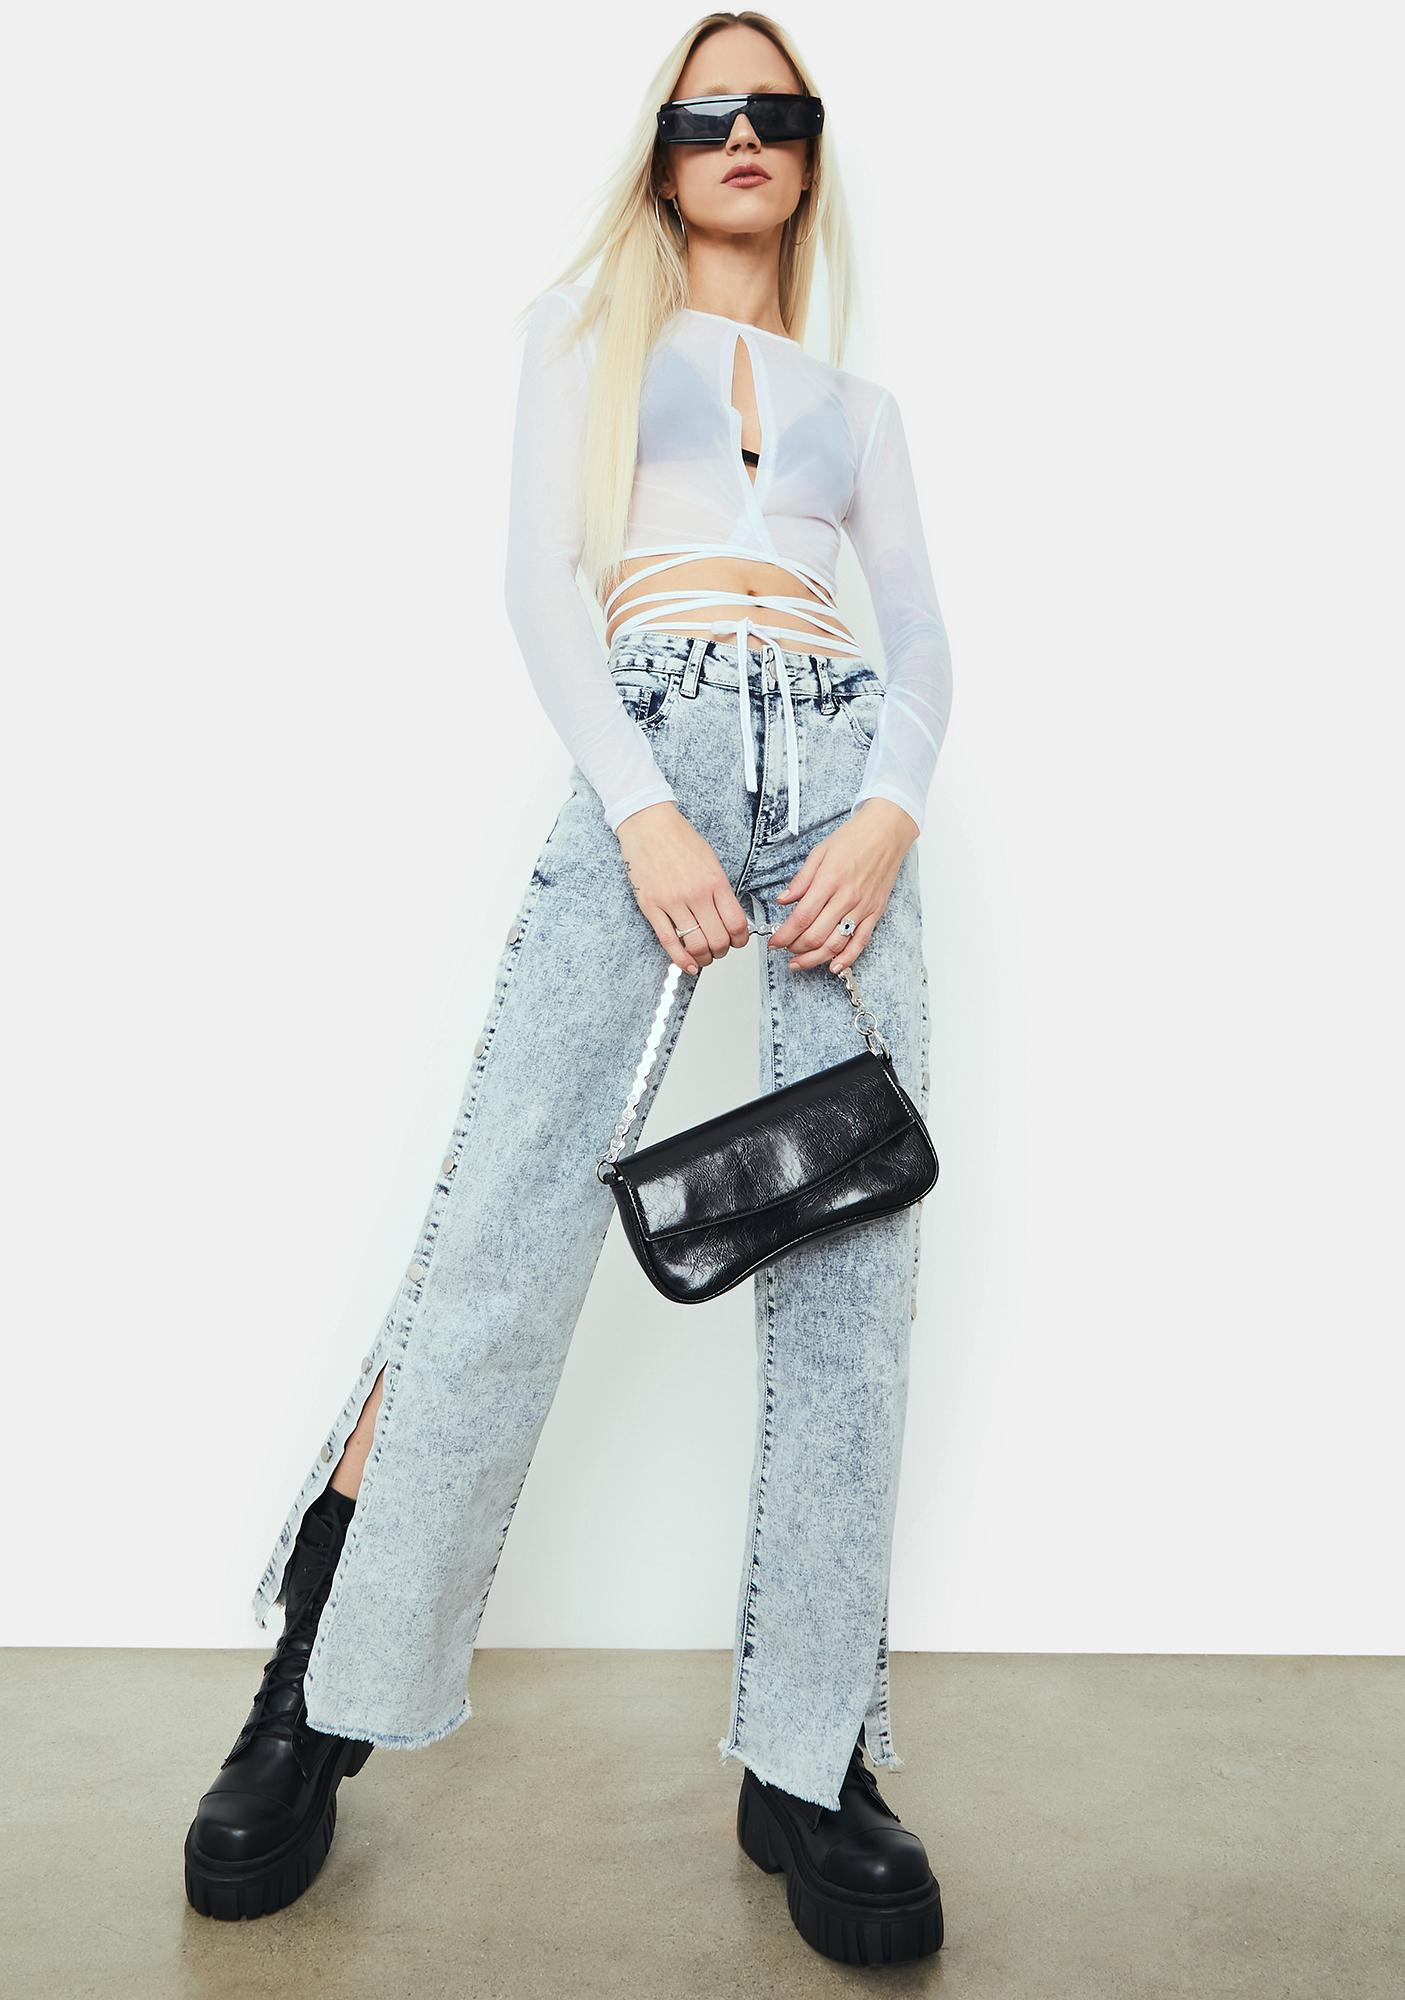 Blanc Invade Your Space Mesh Crop Top